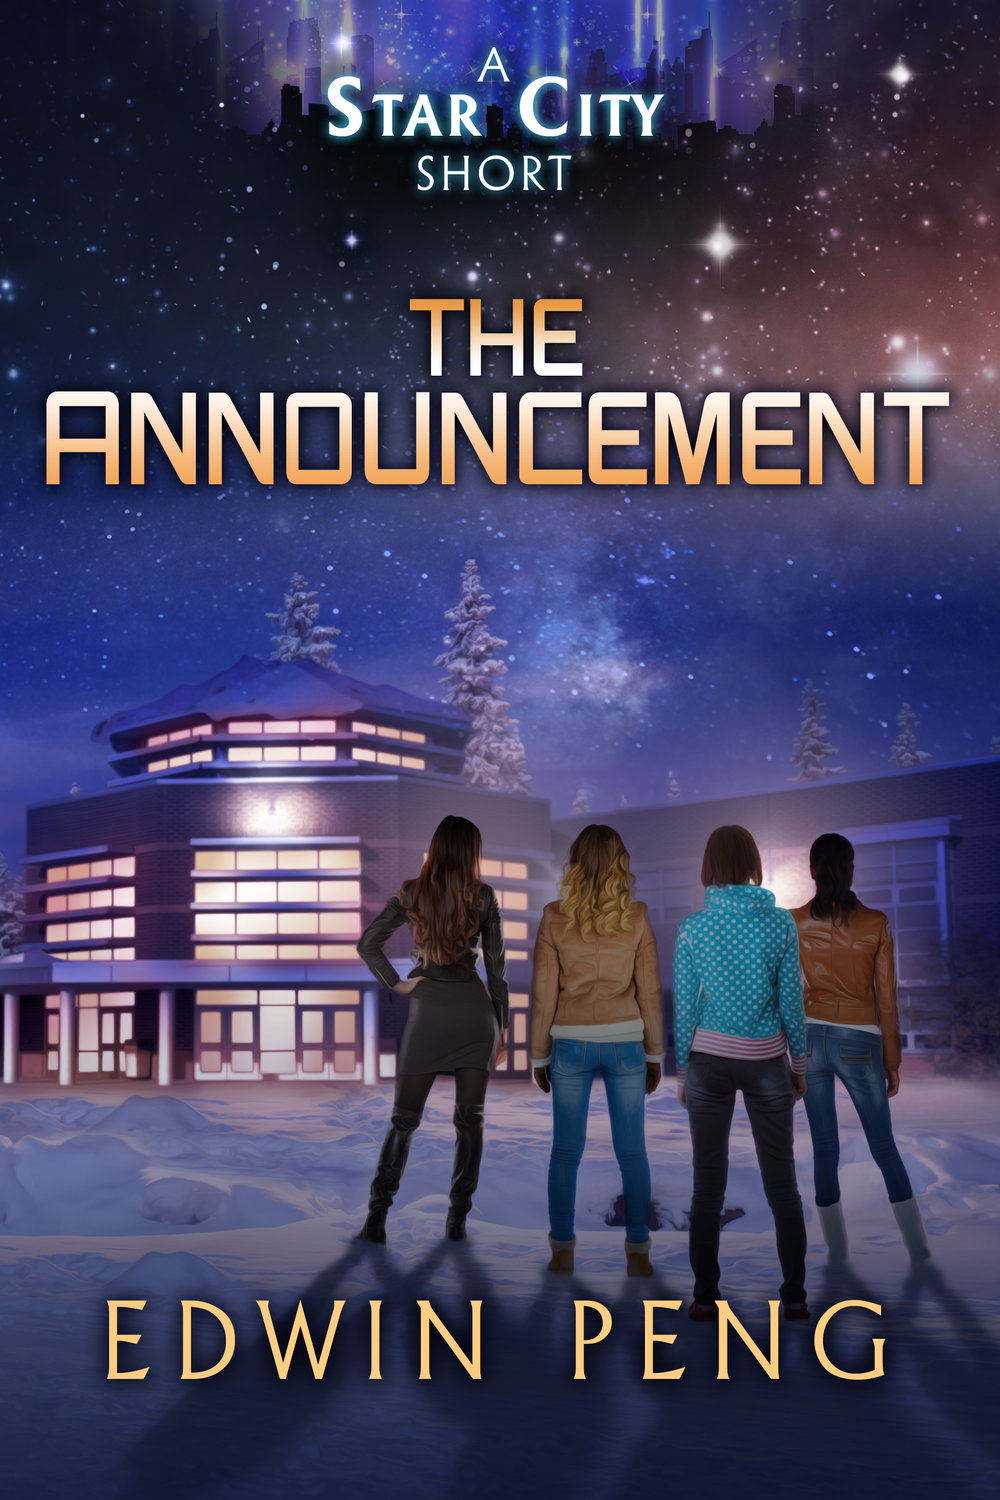 TheAnnouncement_Cover_v5.jpg